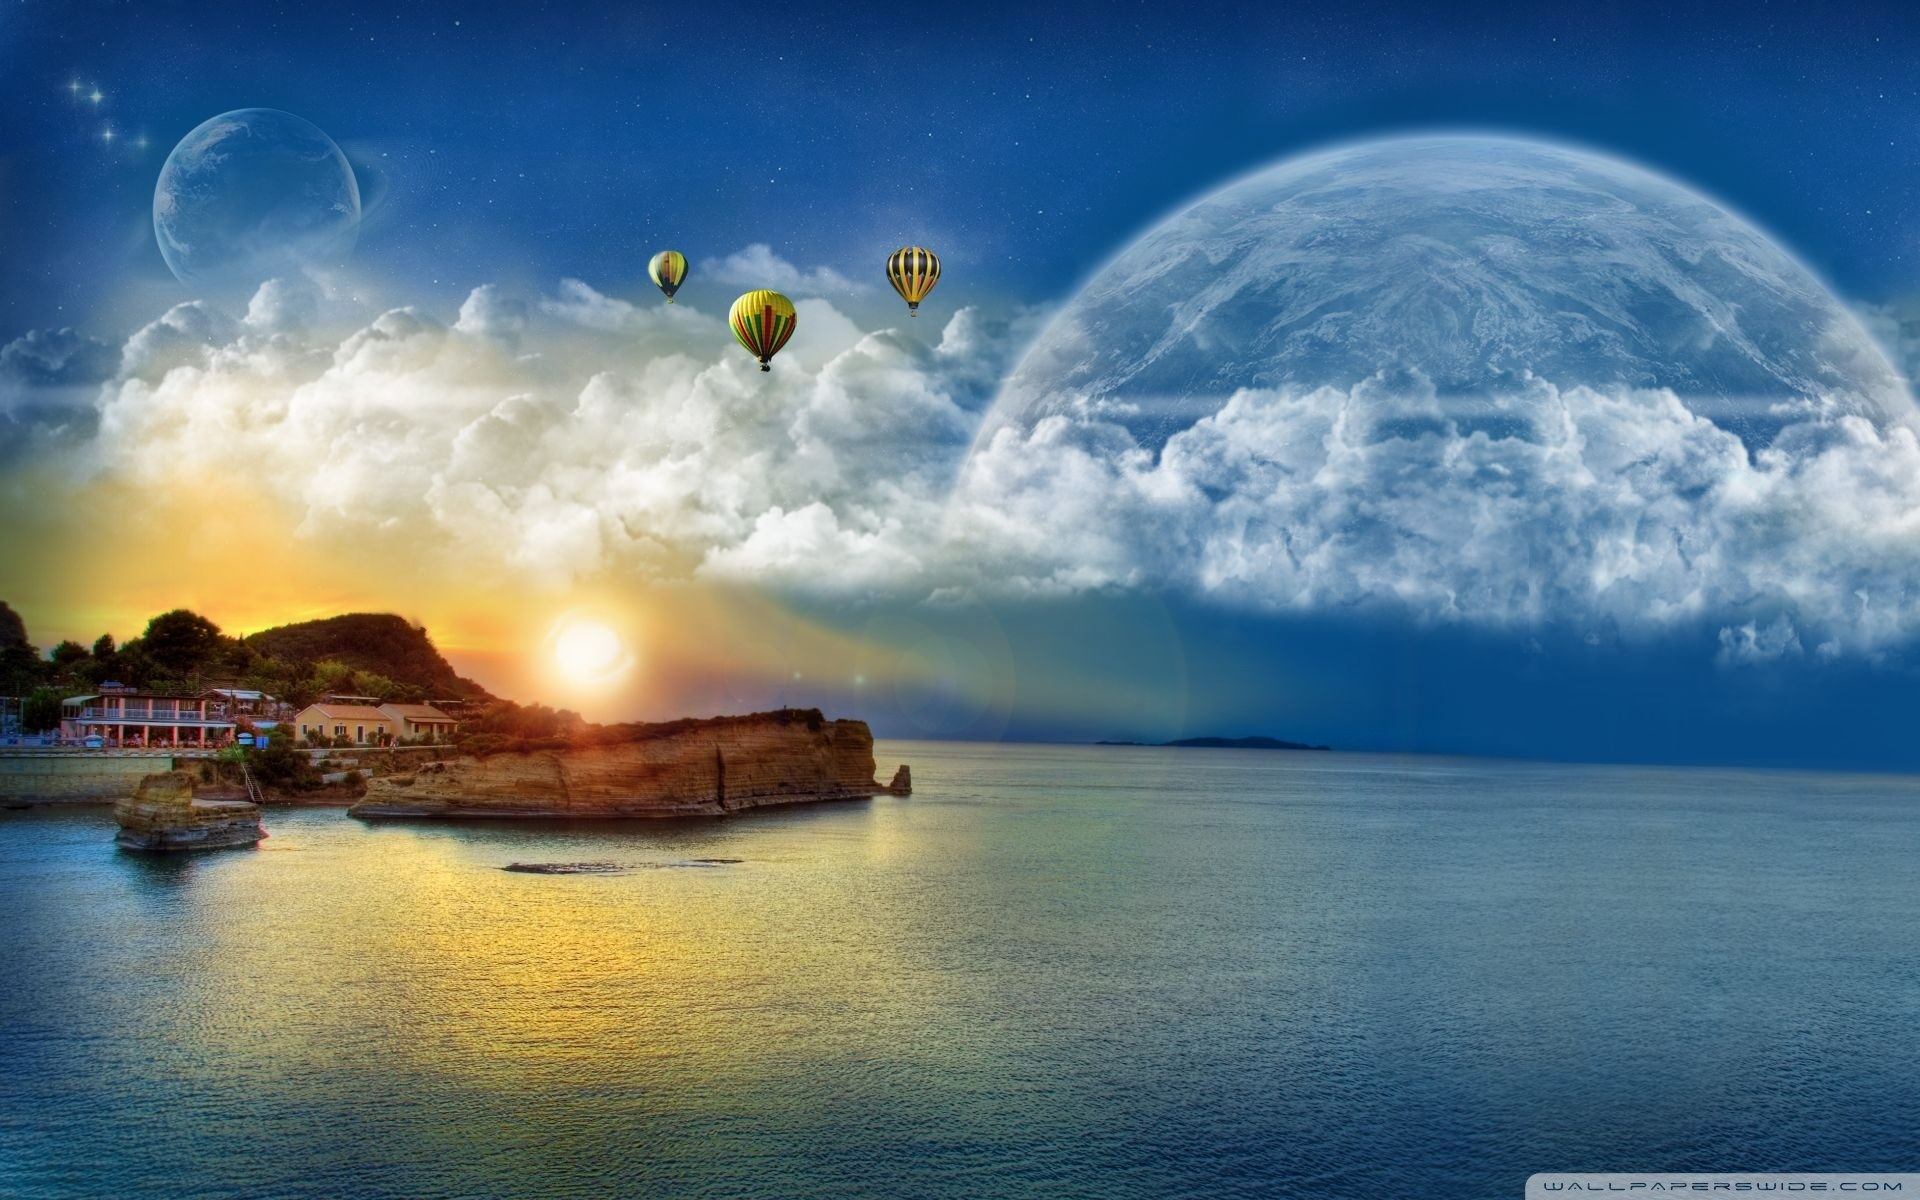 20+ Dreamy and Fantasy Desktop Wallpapers, Backgrounds, Images ...